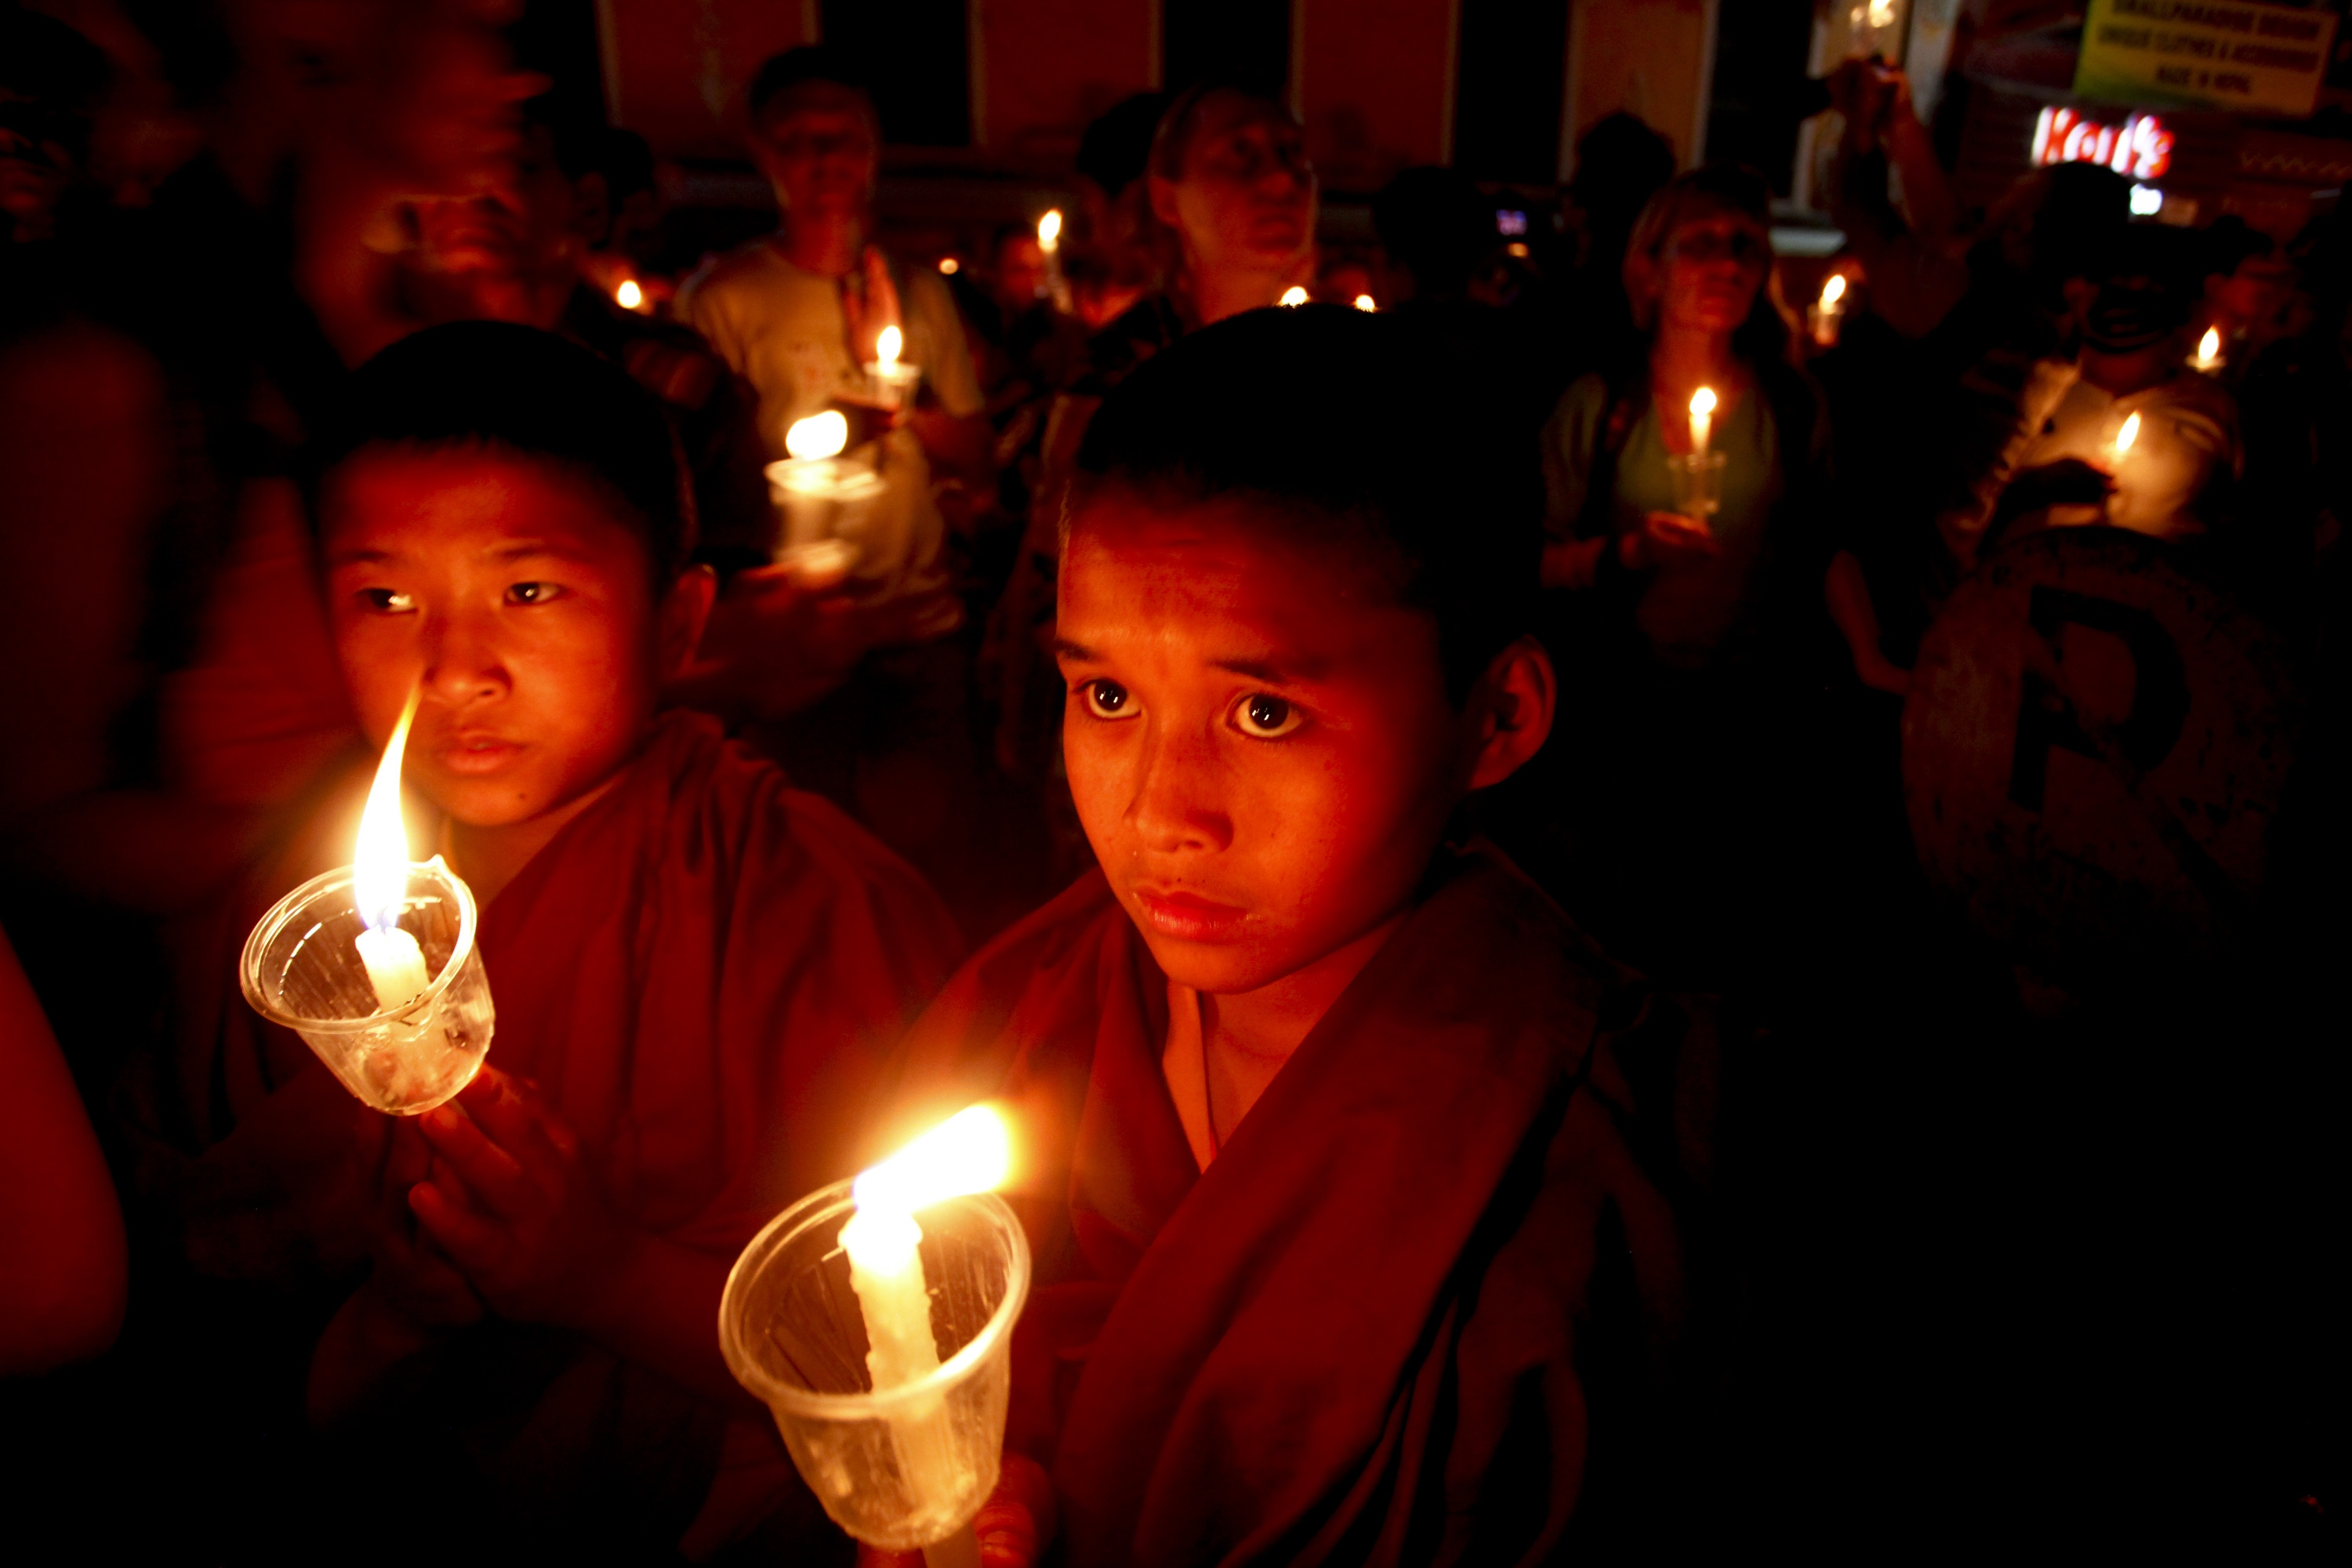 KATHMANDU, June 3, 2015 (Xinhua) -- Buddhist monks take part in a candle light vigil at Boudhanath stupa a month after the April 25 earthquake in Kathmandu, Nepal, June 2, 2015. The massive earthquake which struck Nepal on April 25 and ensuing aftershocks have left nearly 9,000 people dead and destroyed or damaged tens of thousands of houses in Nepal. (Xinhua/Pratap Thapa/IANS)